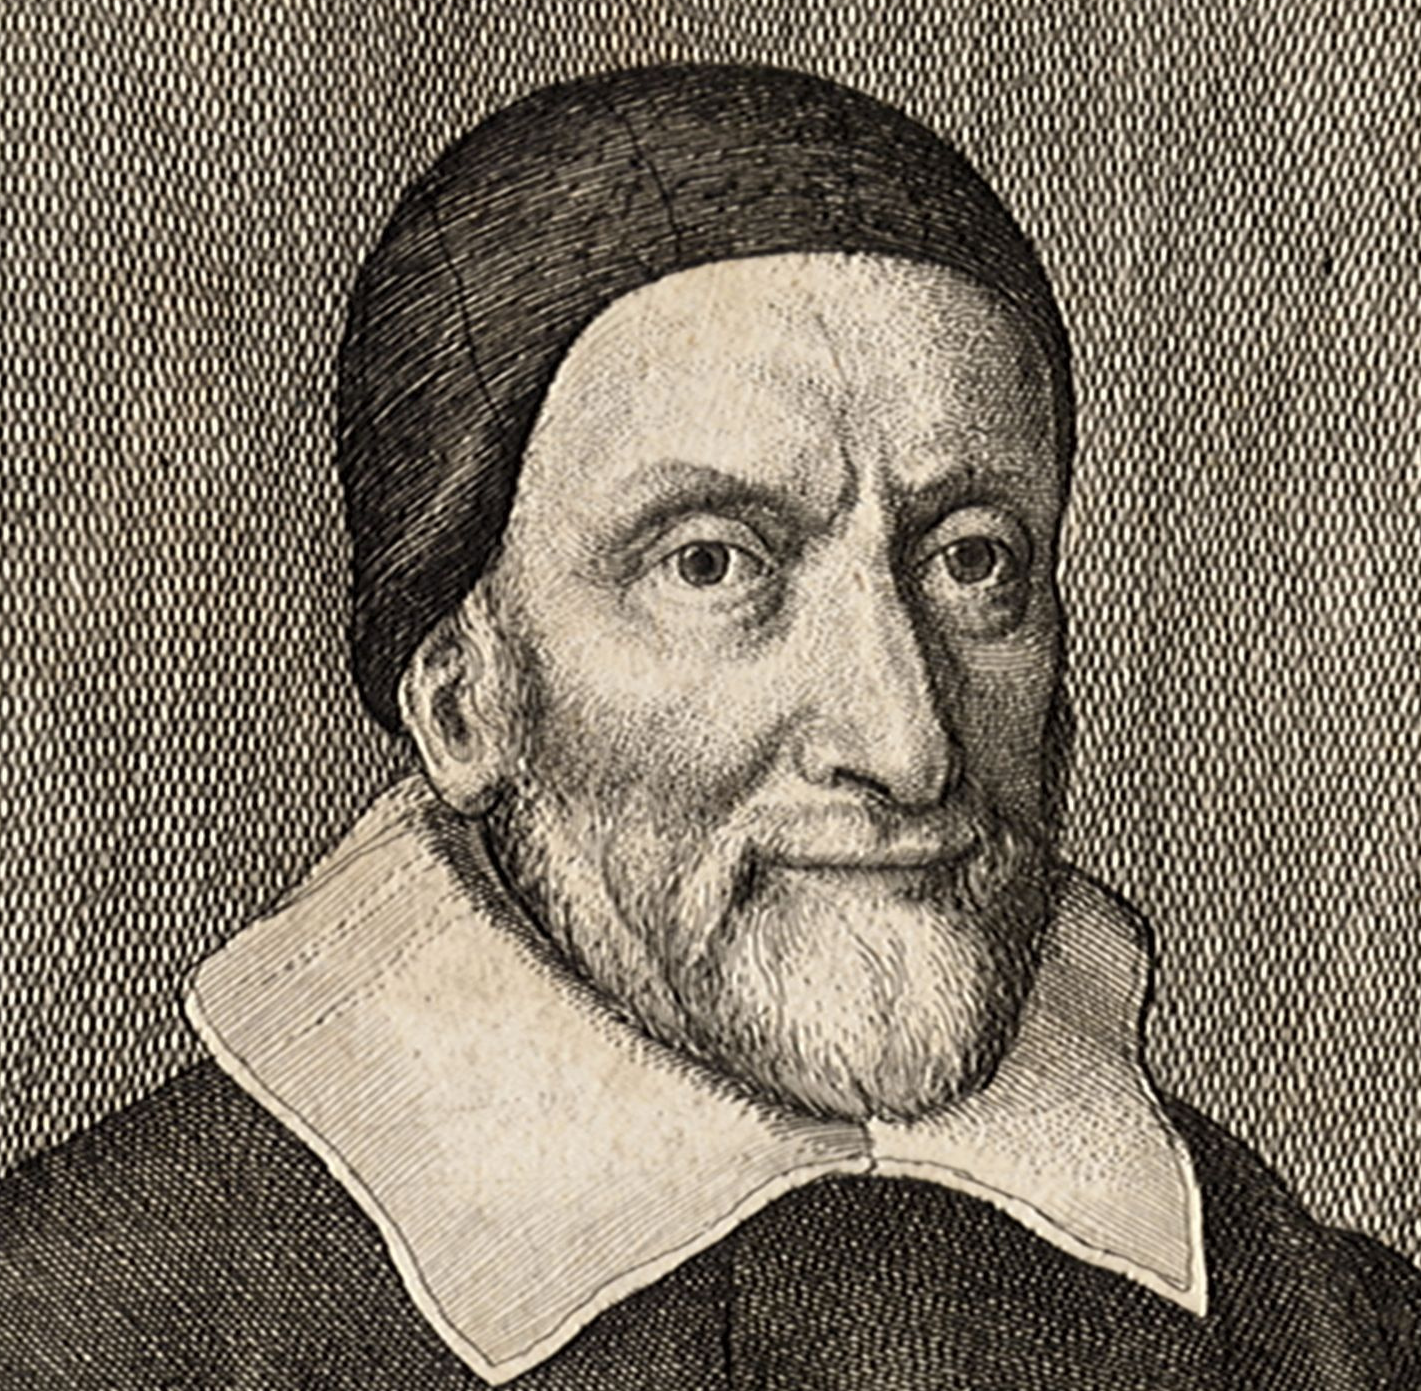 William Oughtred (5 March 1575 - 30 June 1660)